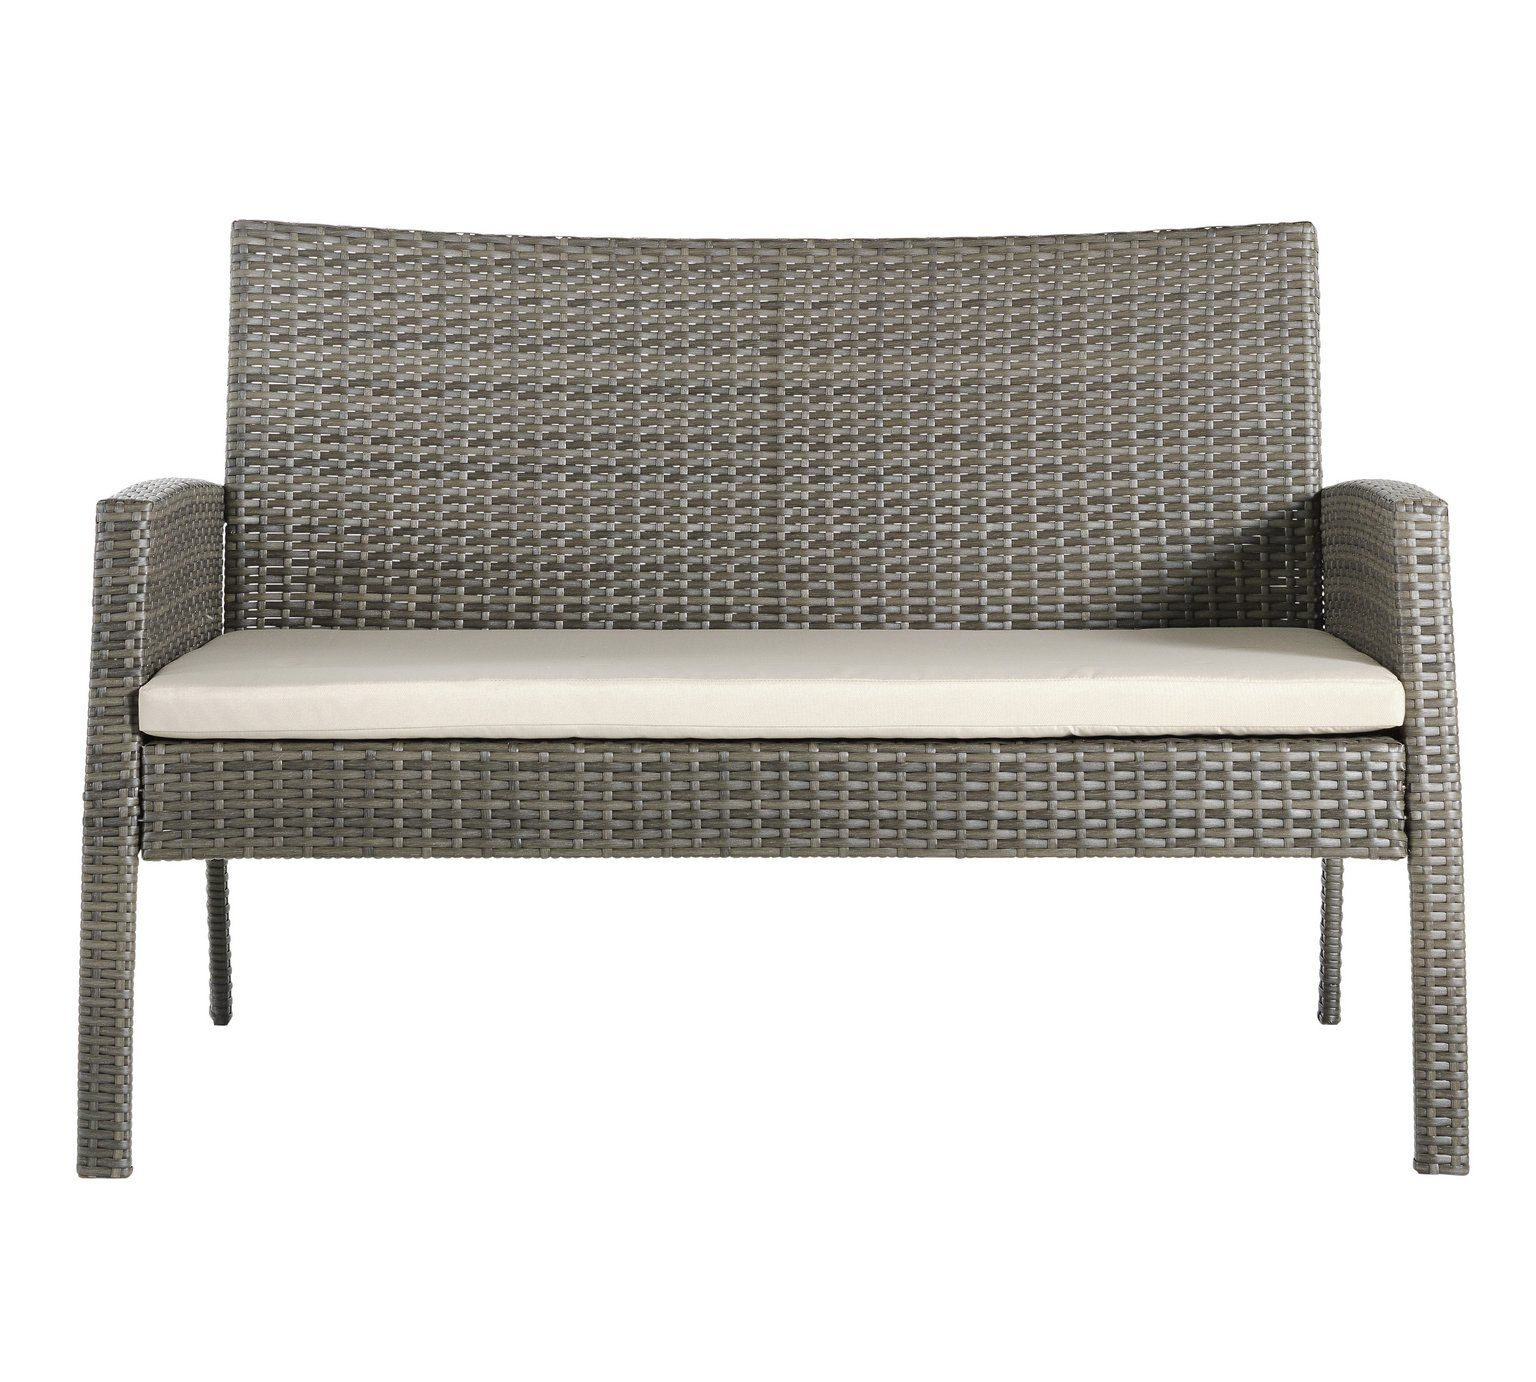 Buy Home Lucia 4 Seater Garden Sofa At Argos.co.uk, Visit Argos (View 18 of 20)